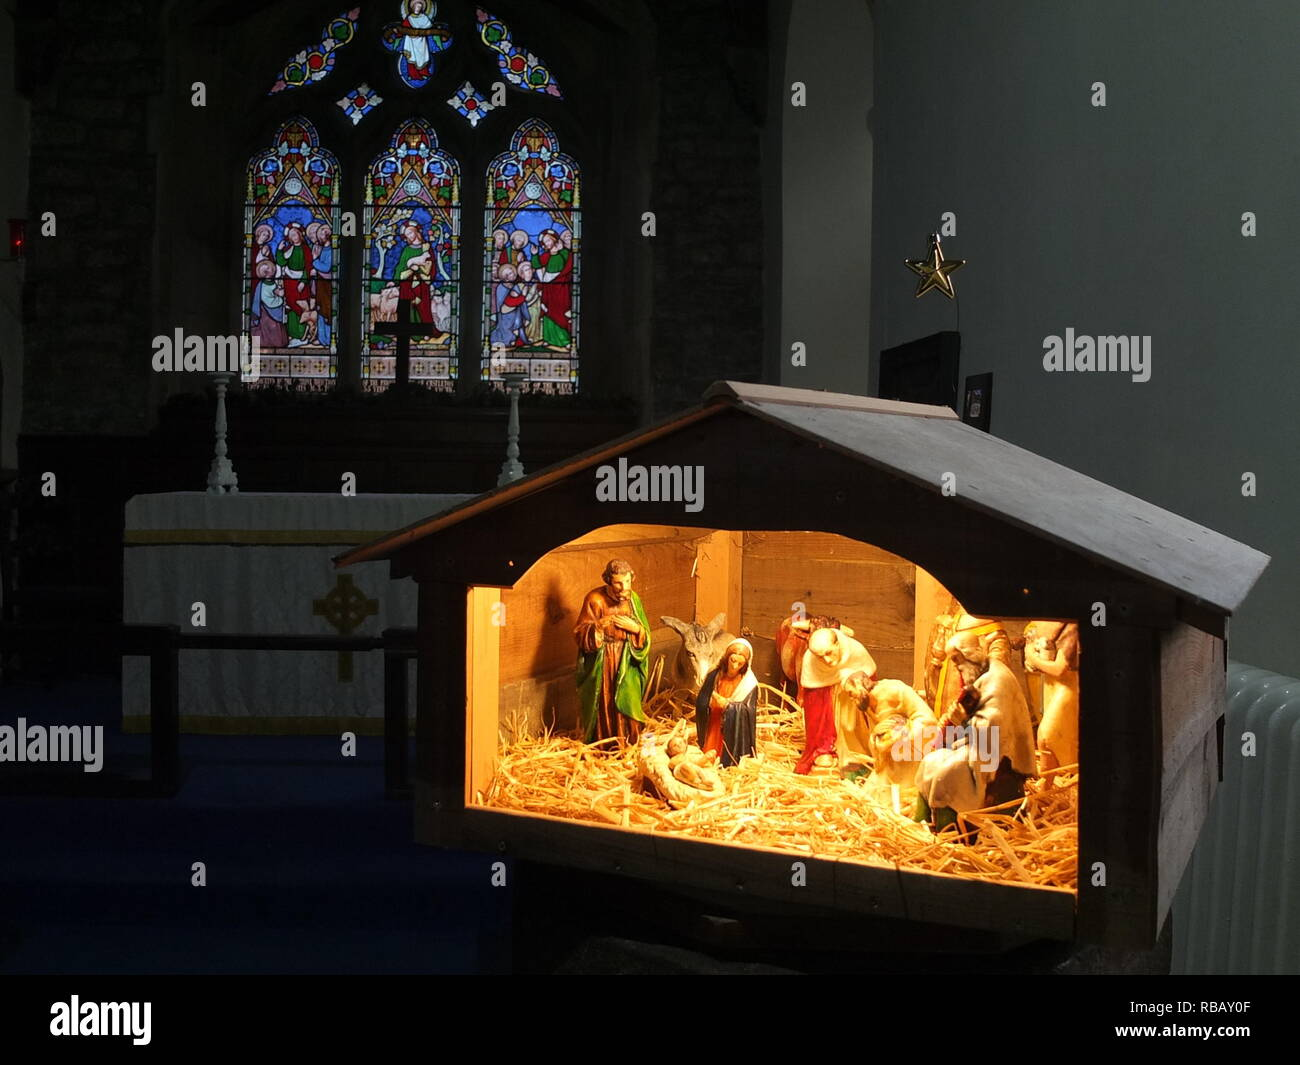 Illuminated crib nativity scene in a church for Christmas (St Edmunds Church, Castleton, Derbyshire, UK) Stock Photo